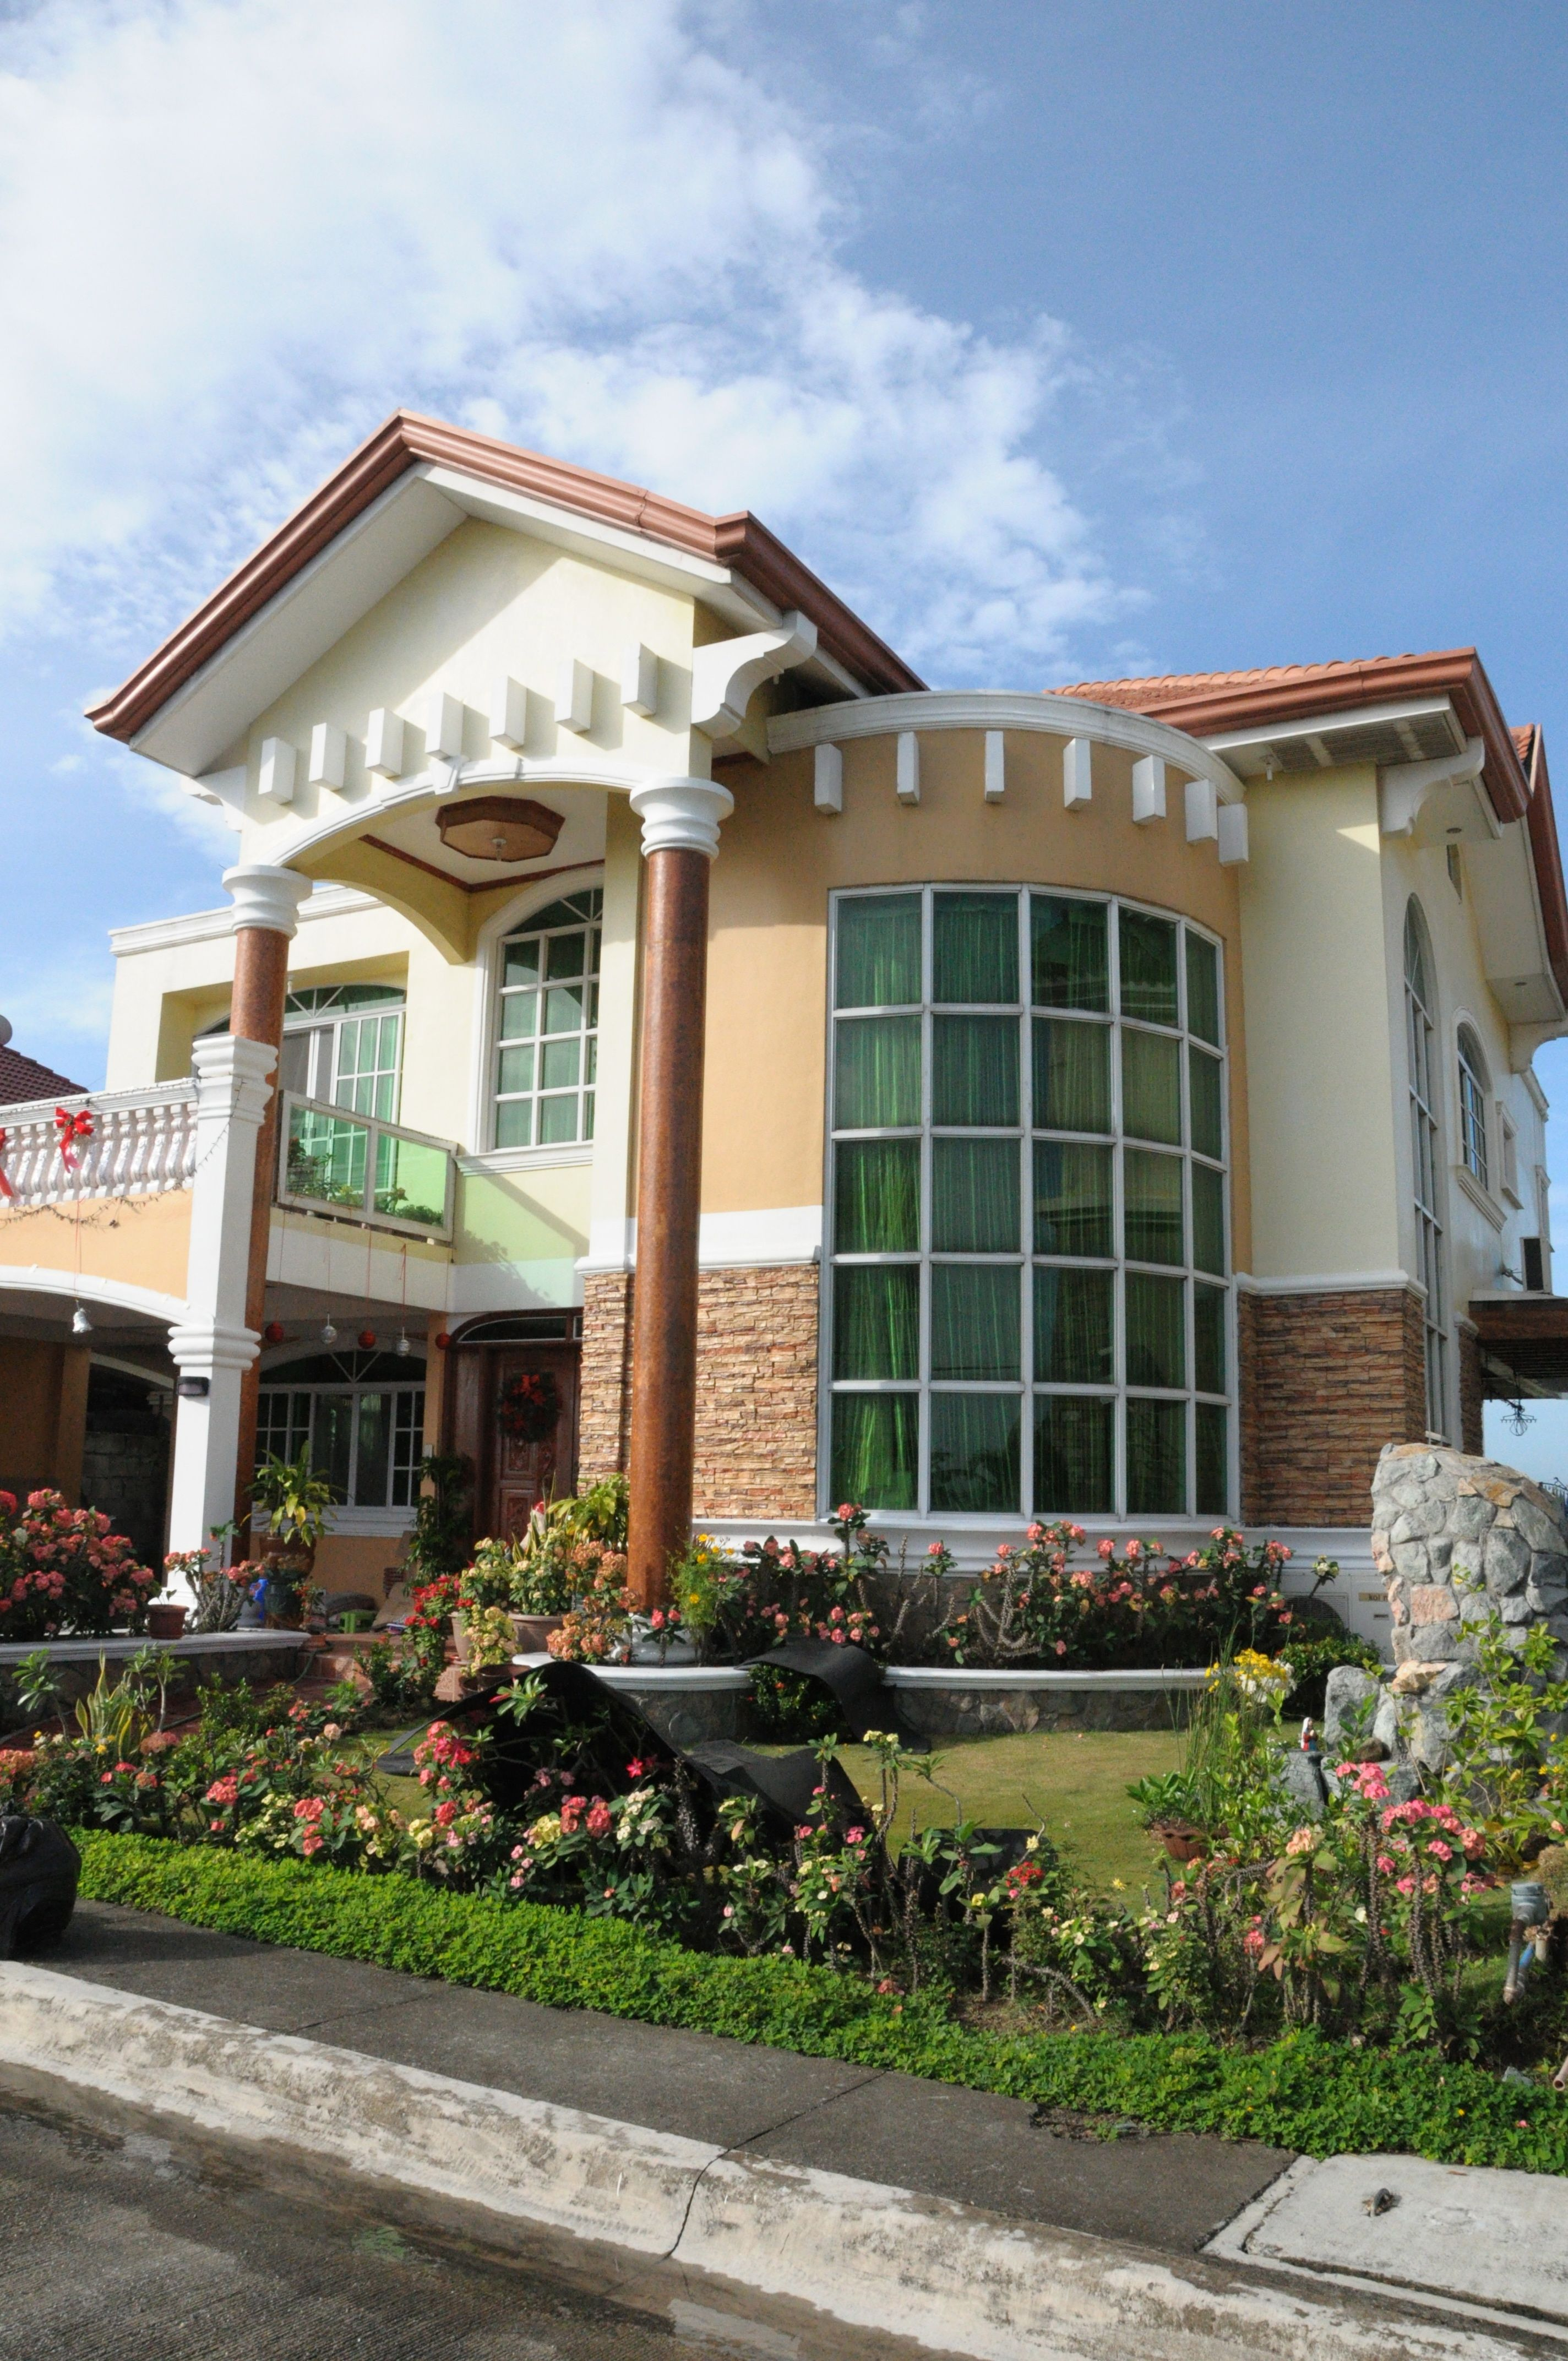 House in the philippines